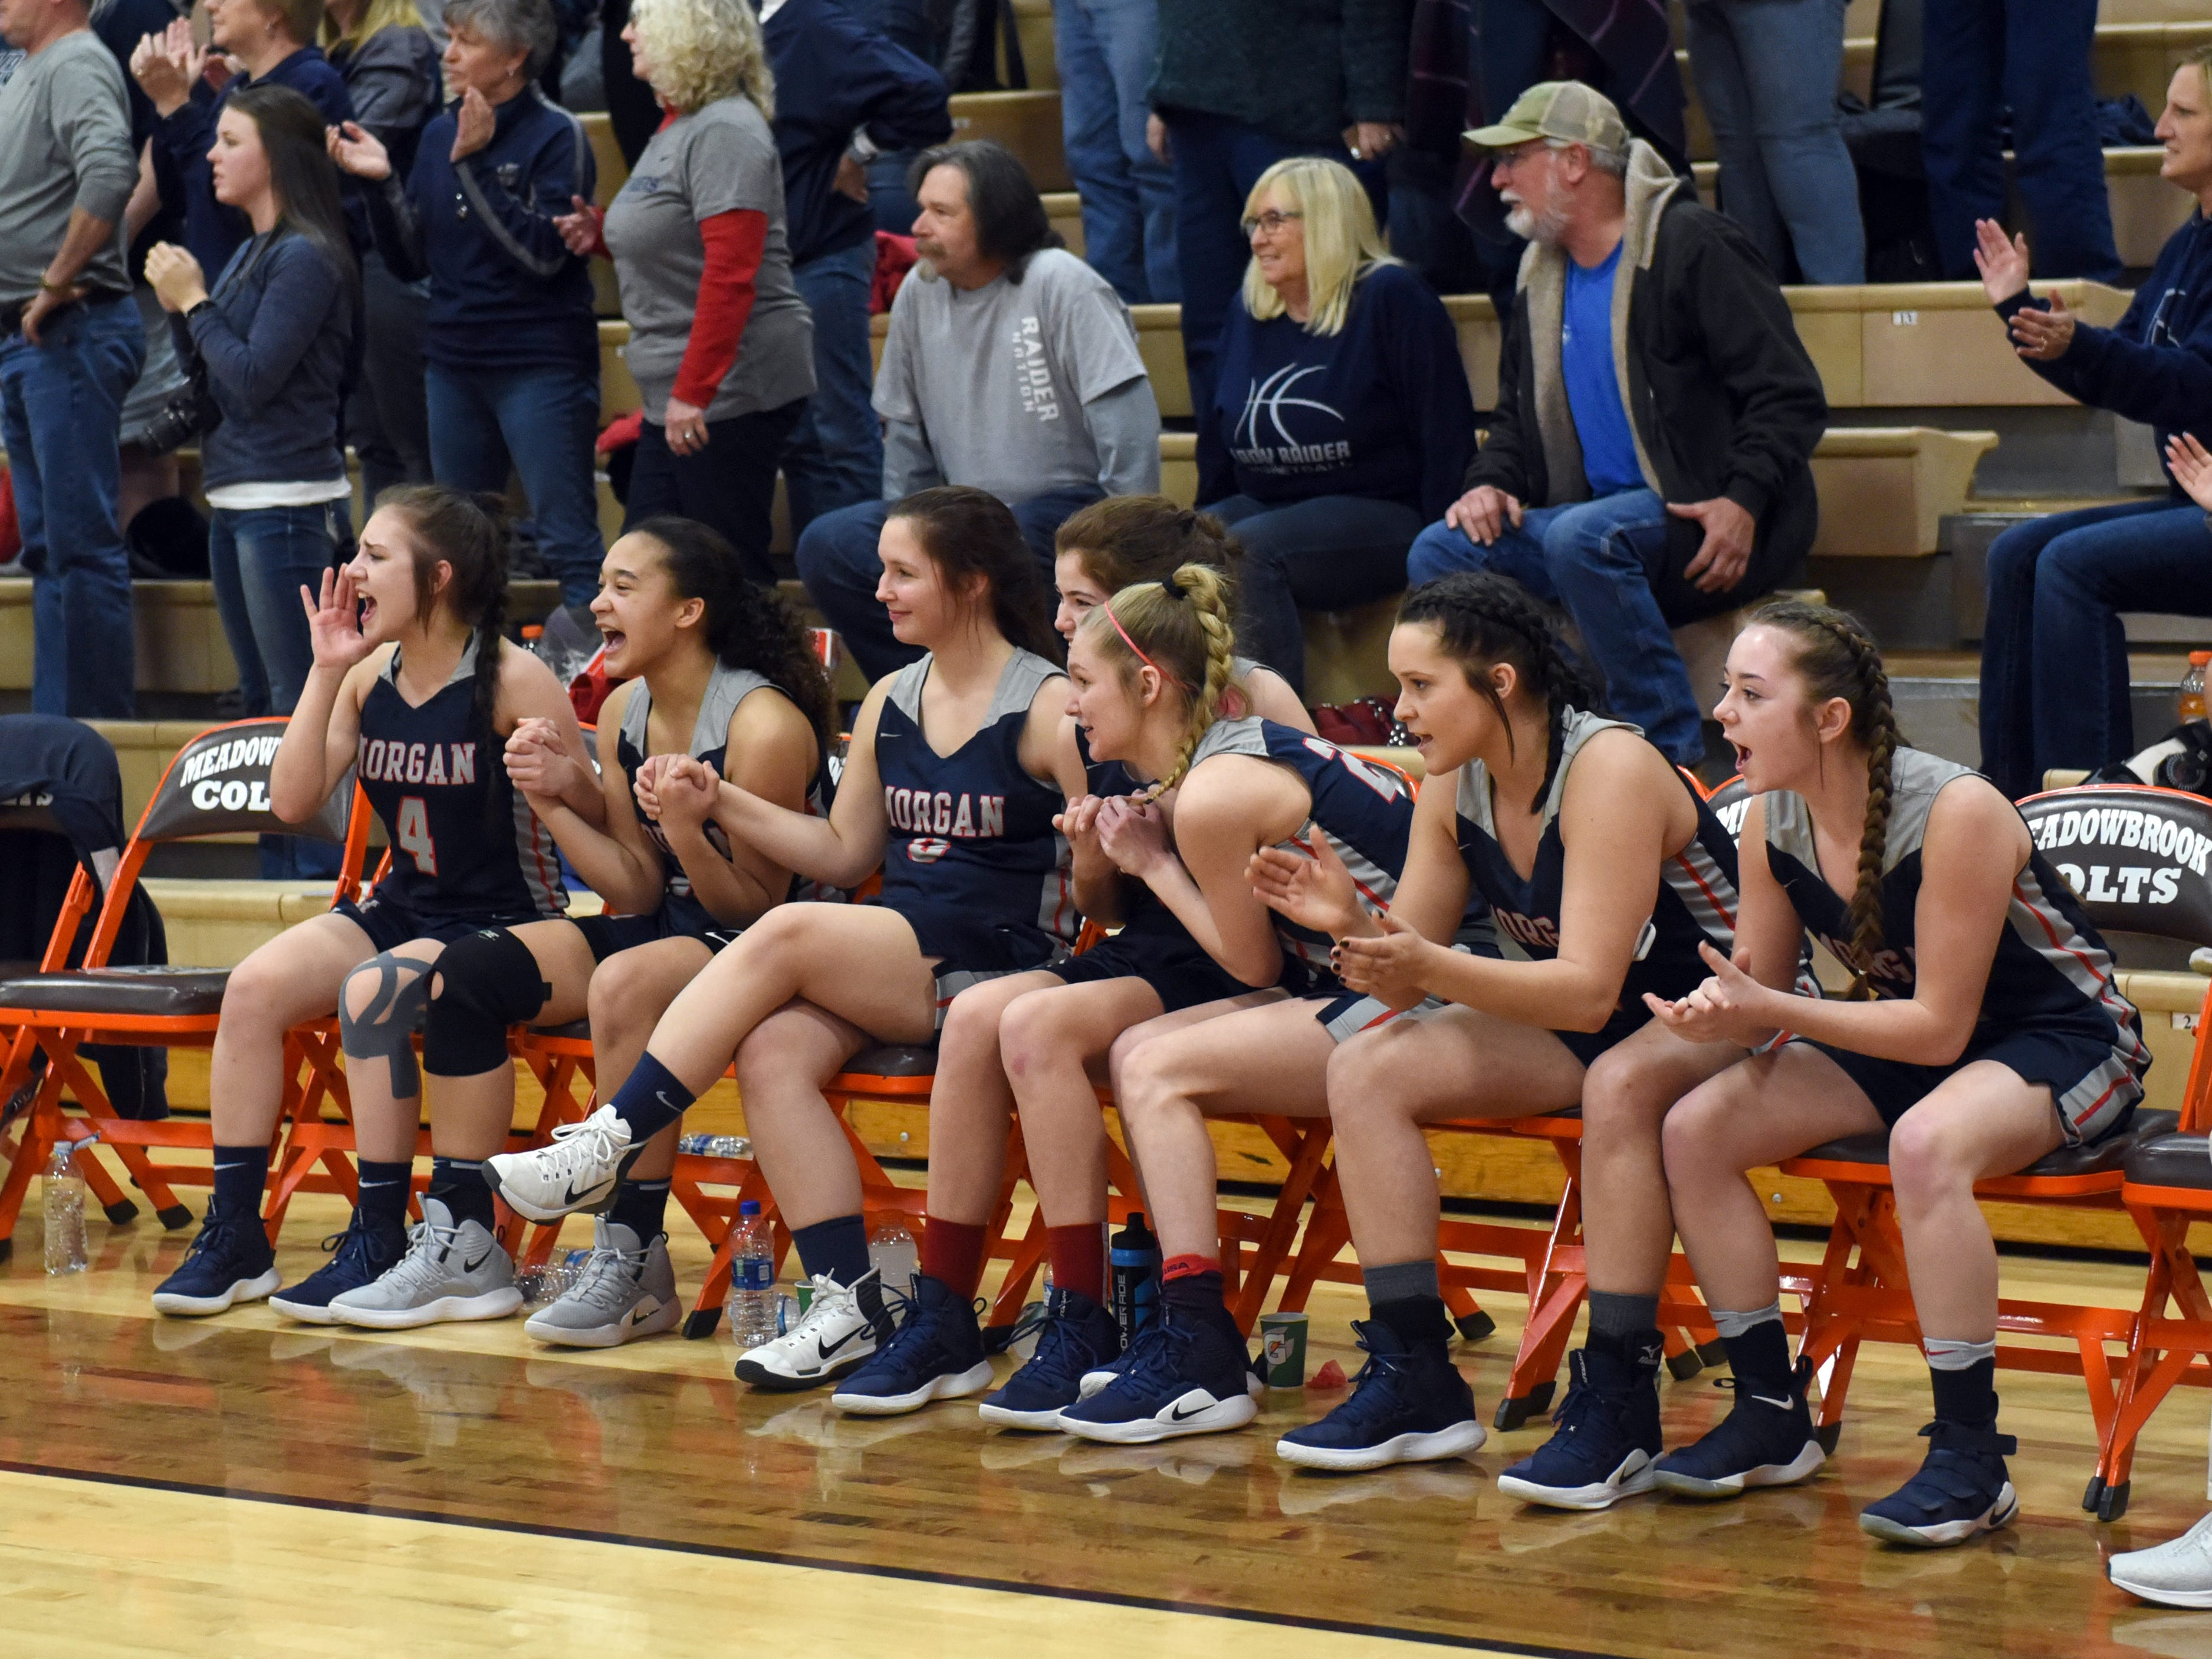 Players on the bench watch intently during the closing moments of Morgan's 46-44 win against Bellaire on Saturday in a Division III district final at Meadowbrook High School.